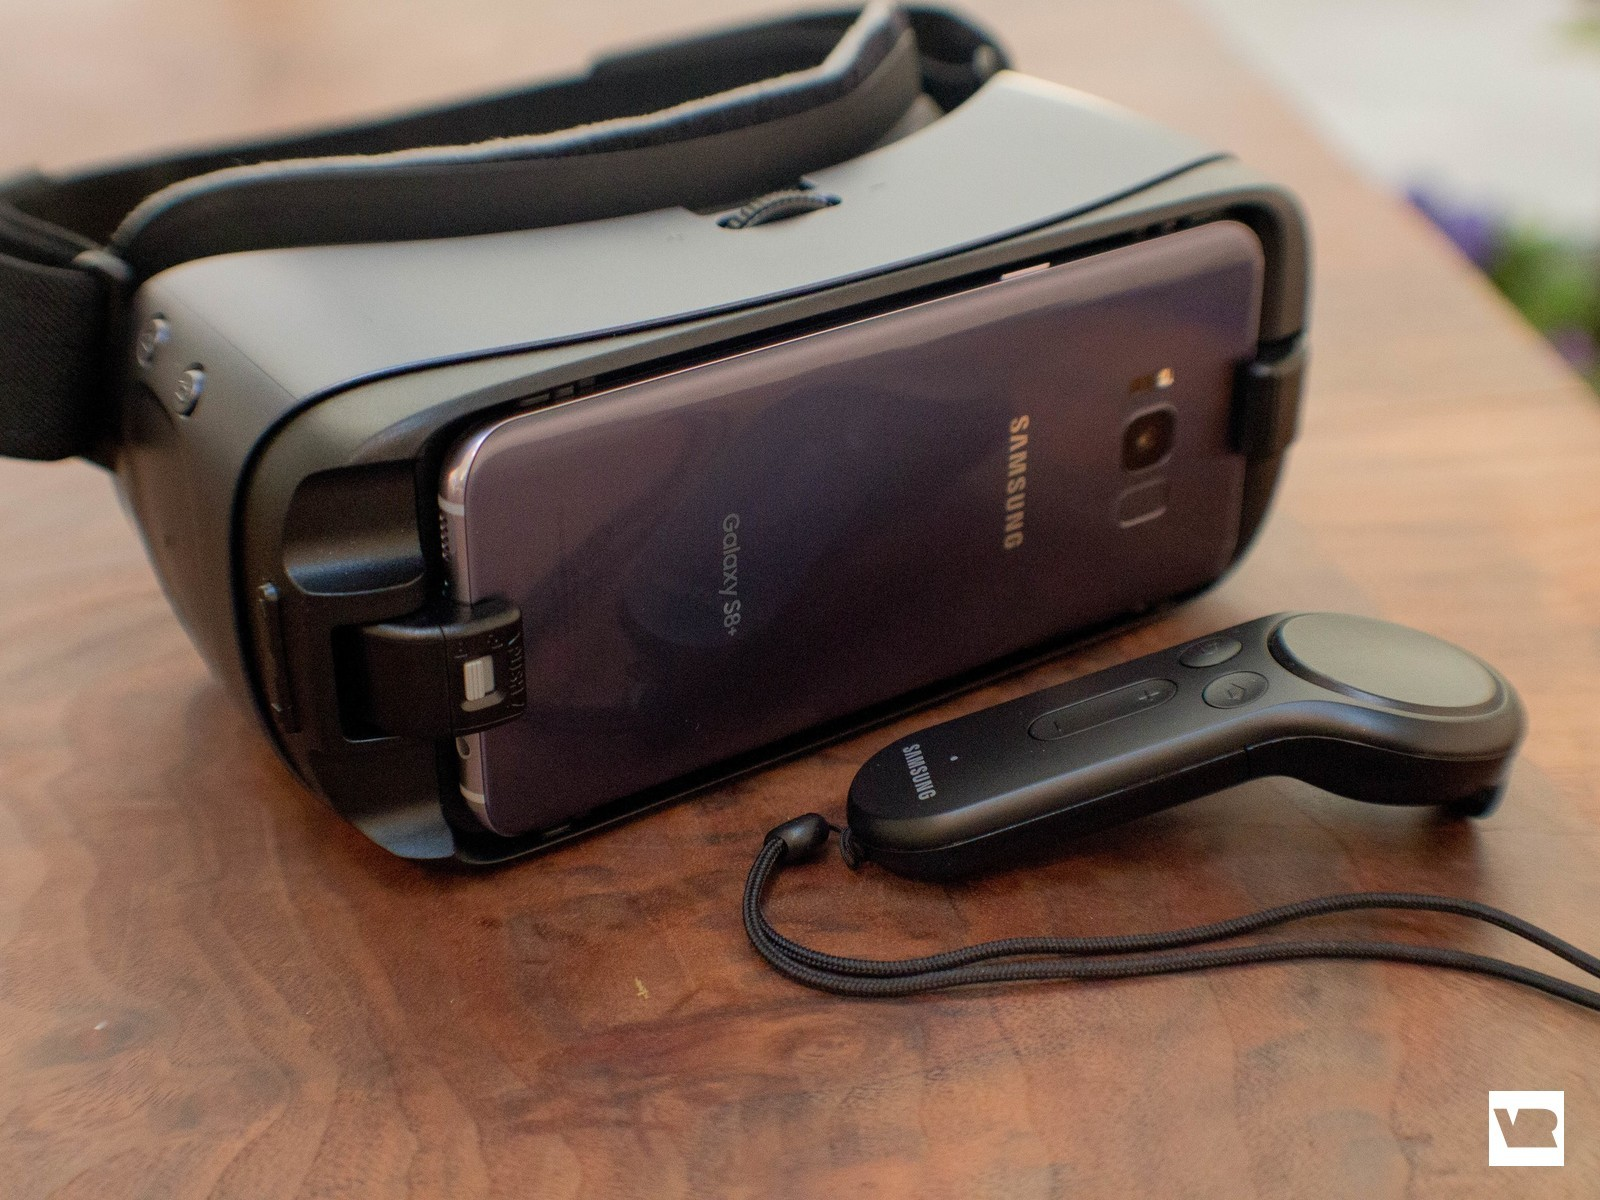 Most hands-on reports with this new Gear VR point out one big difference. They all say the new headset has 42mm lenses with a 101-degree Field of View, ...